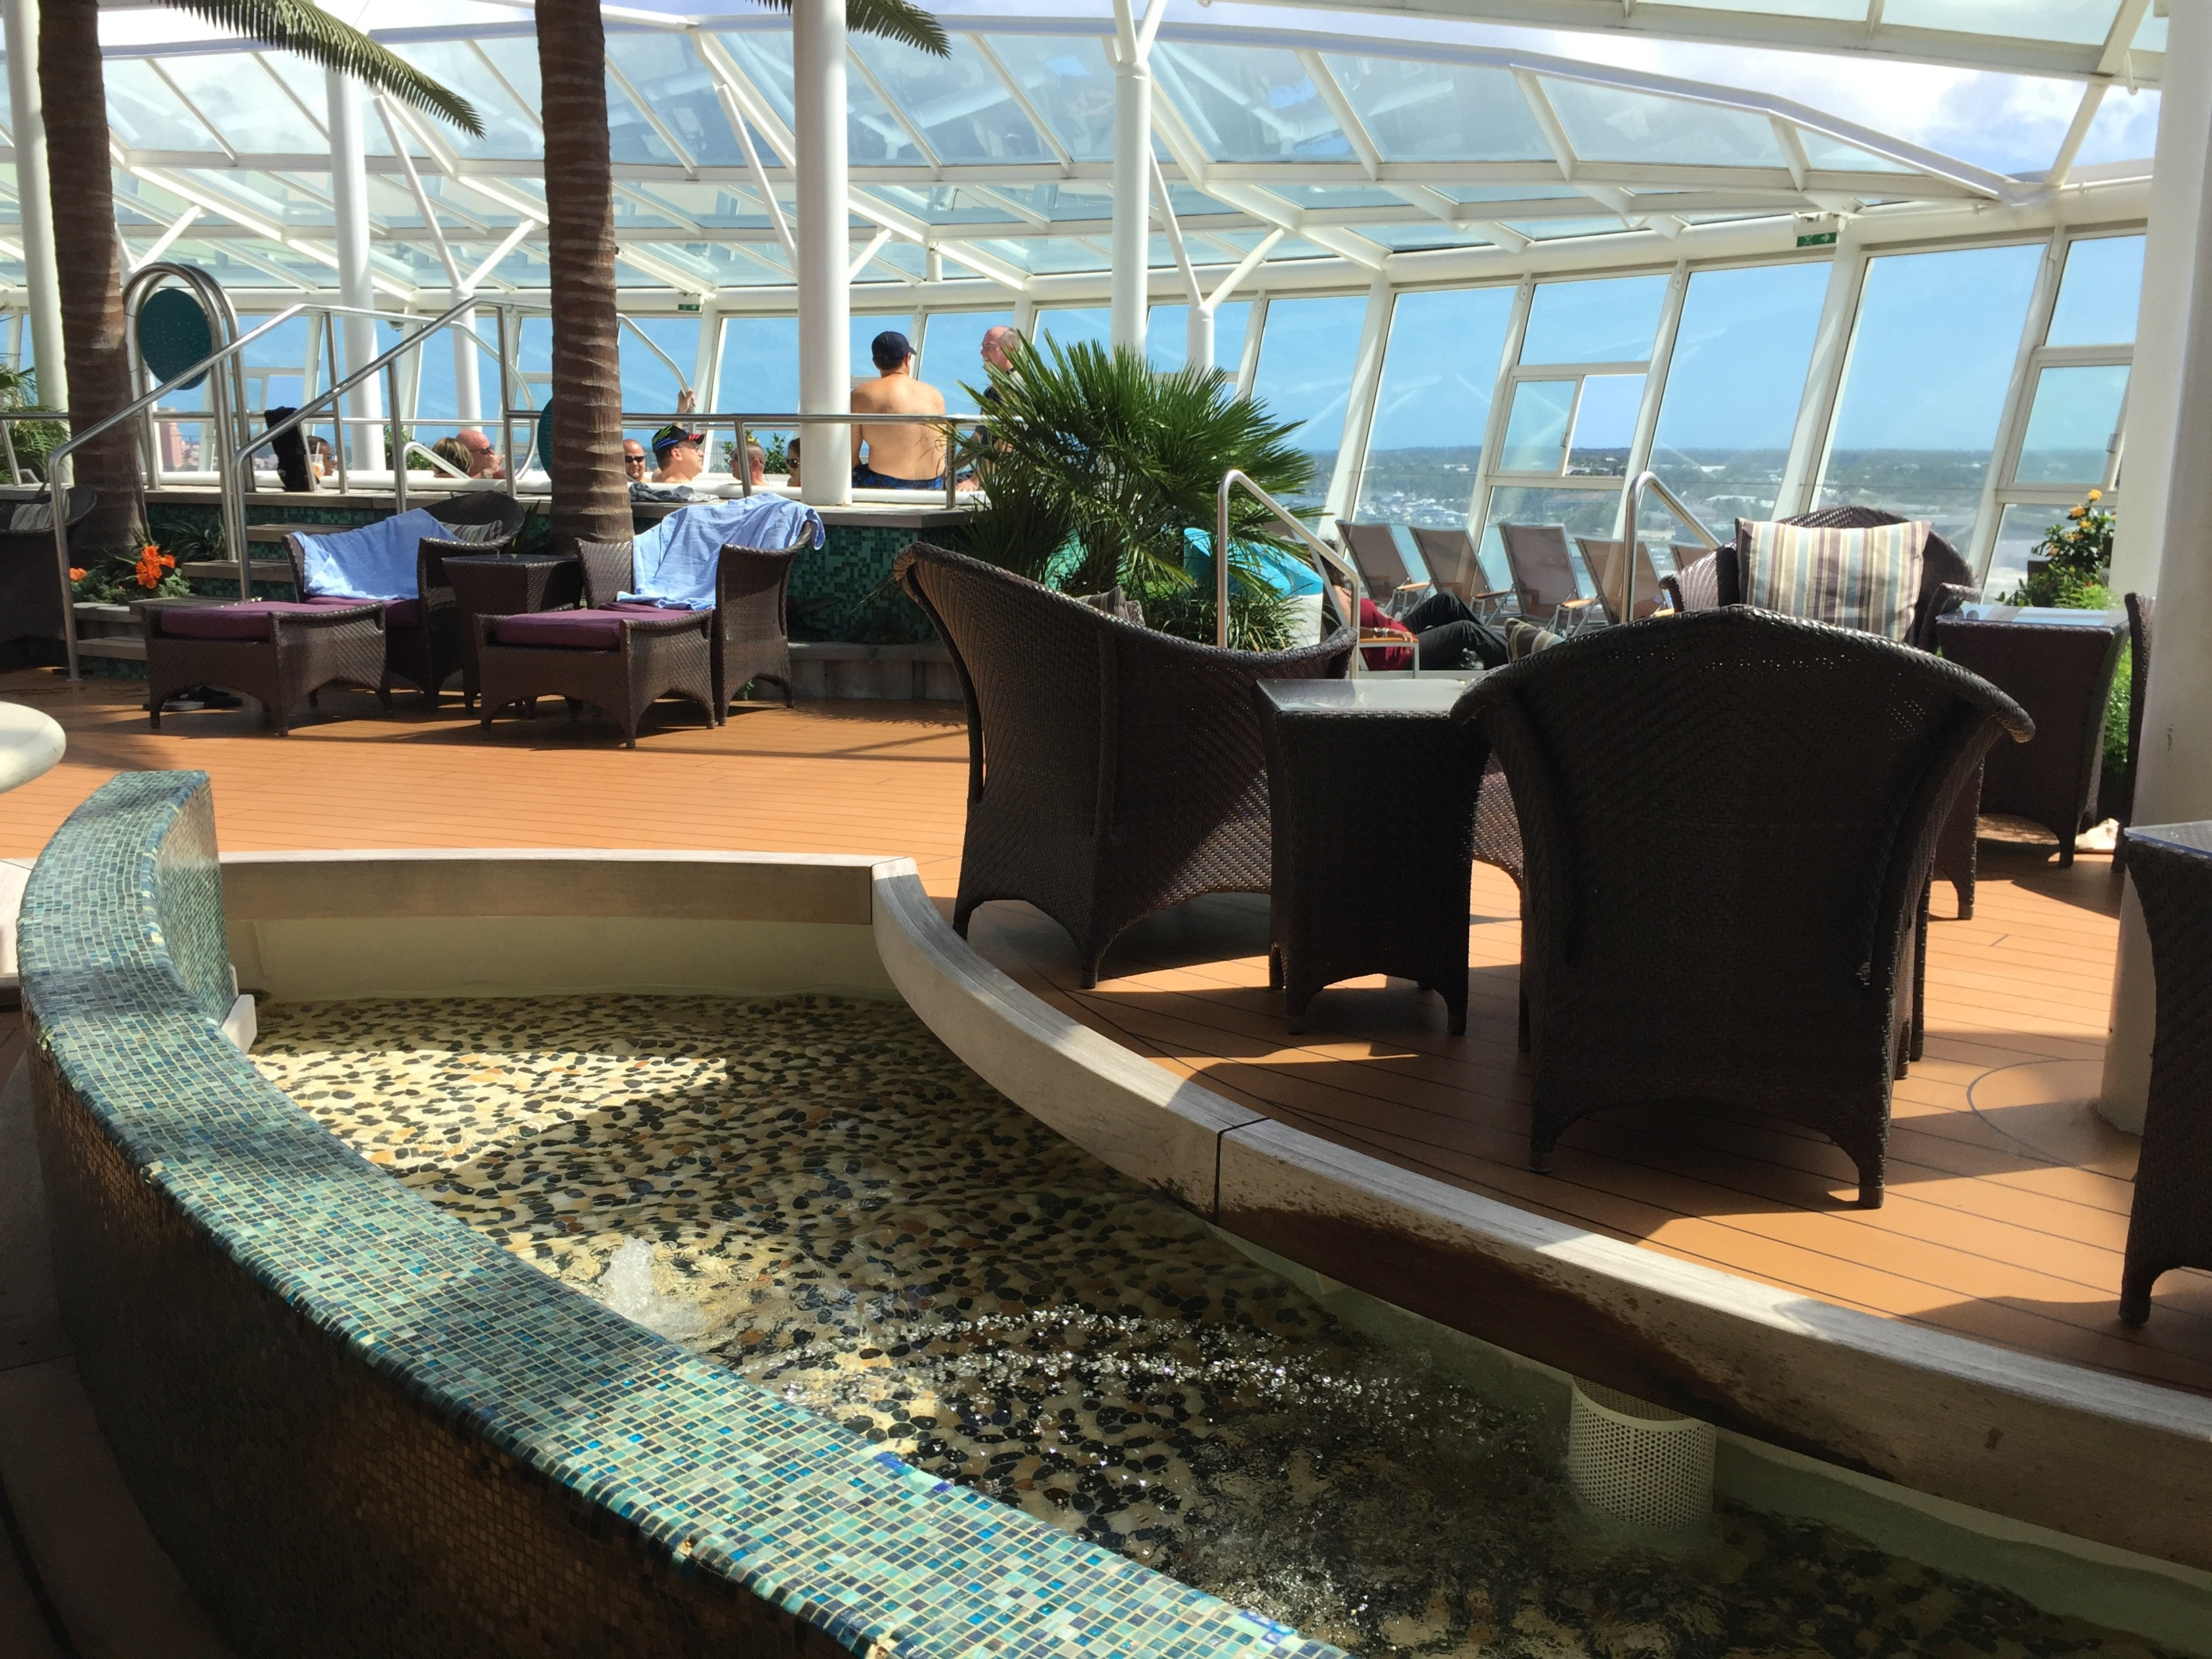 VIEW INTO THE SOLARIUM FROM THE BISTRO SEATING AREA